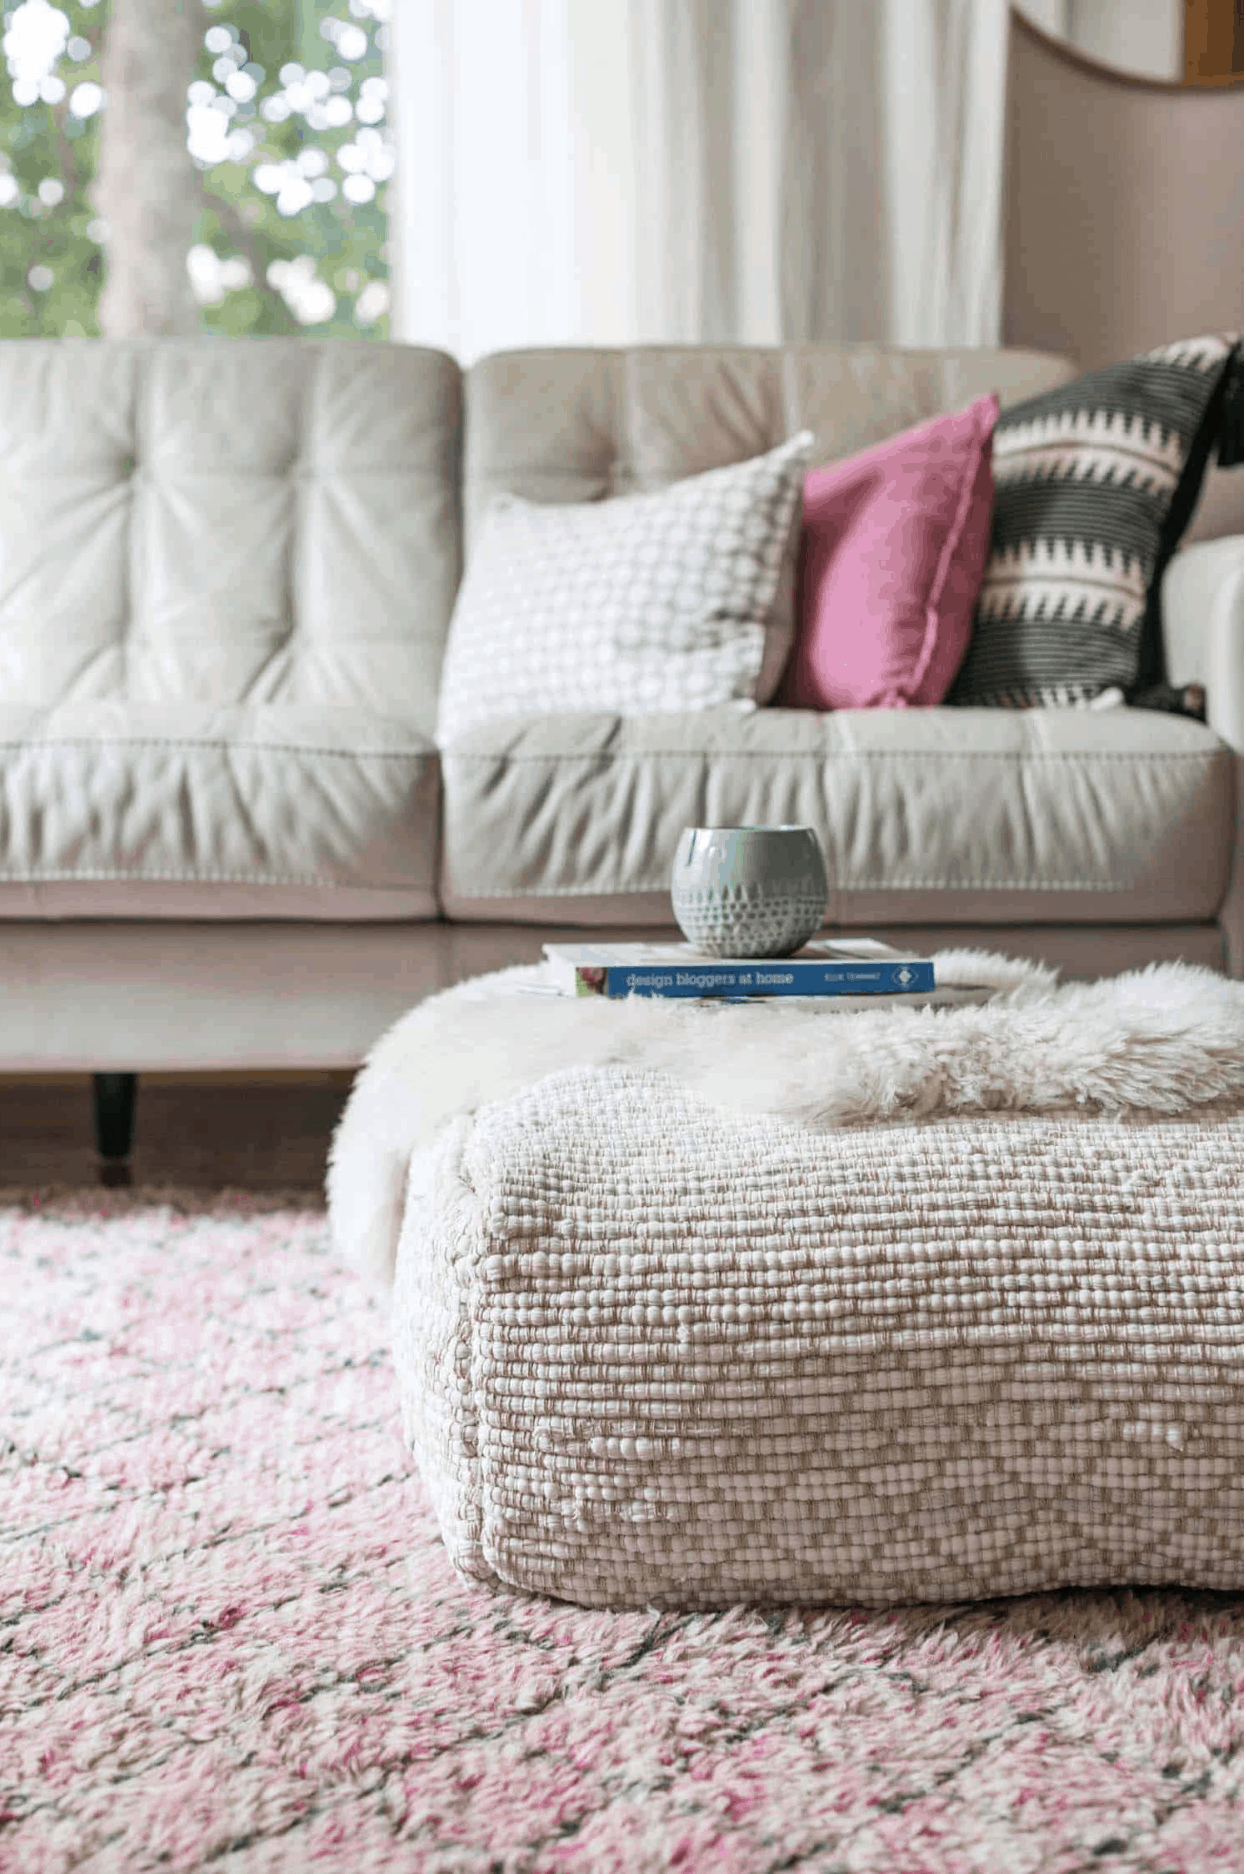 Floor pouf DIY Instructions - The Kindest Way